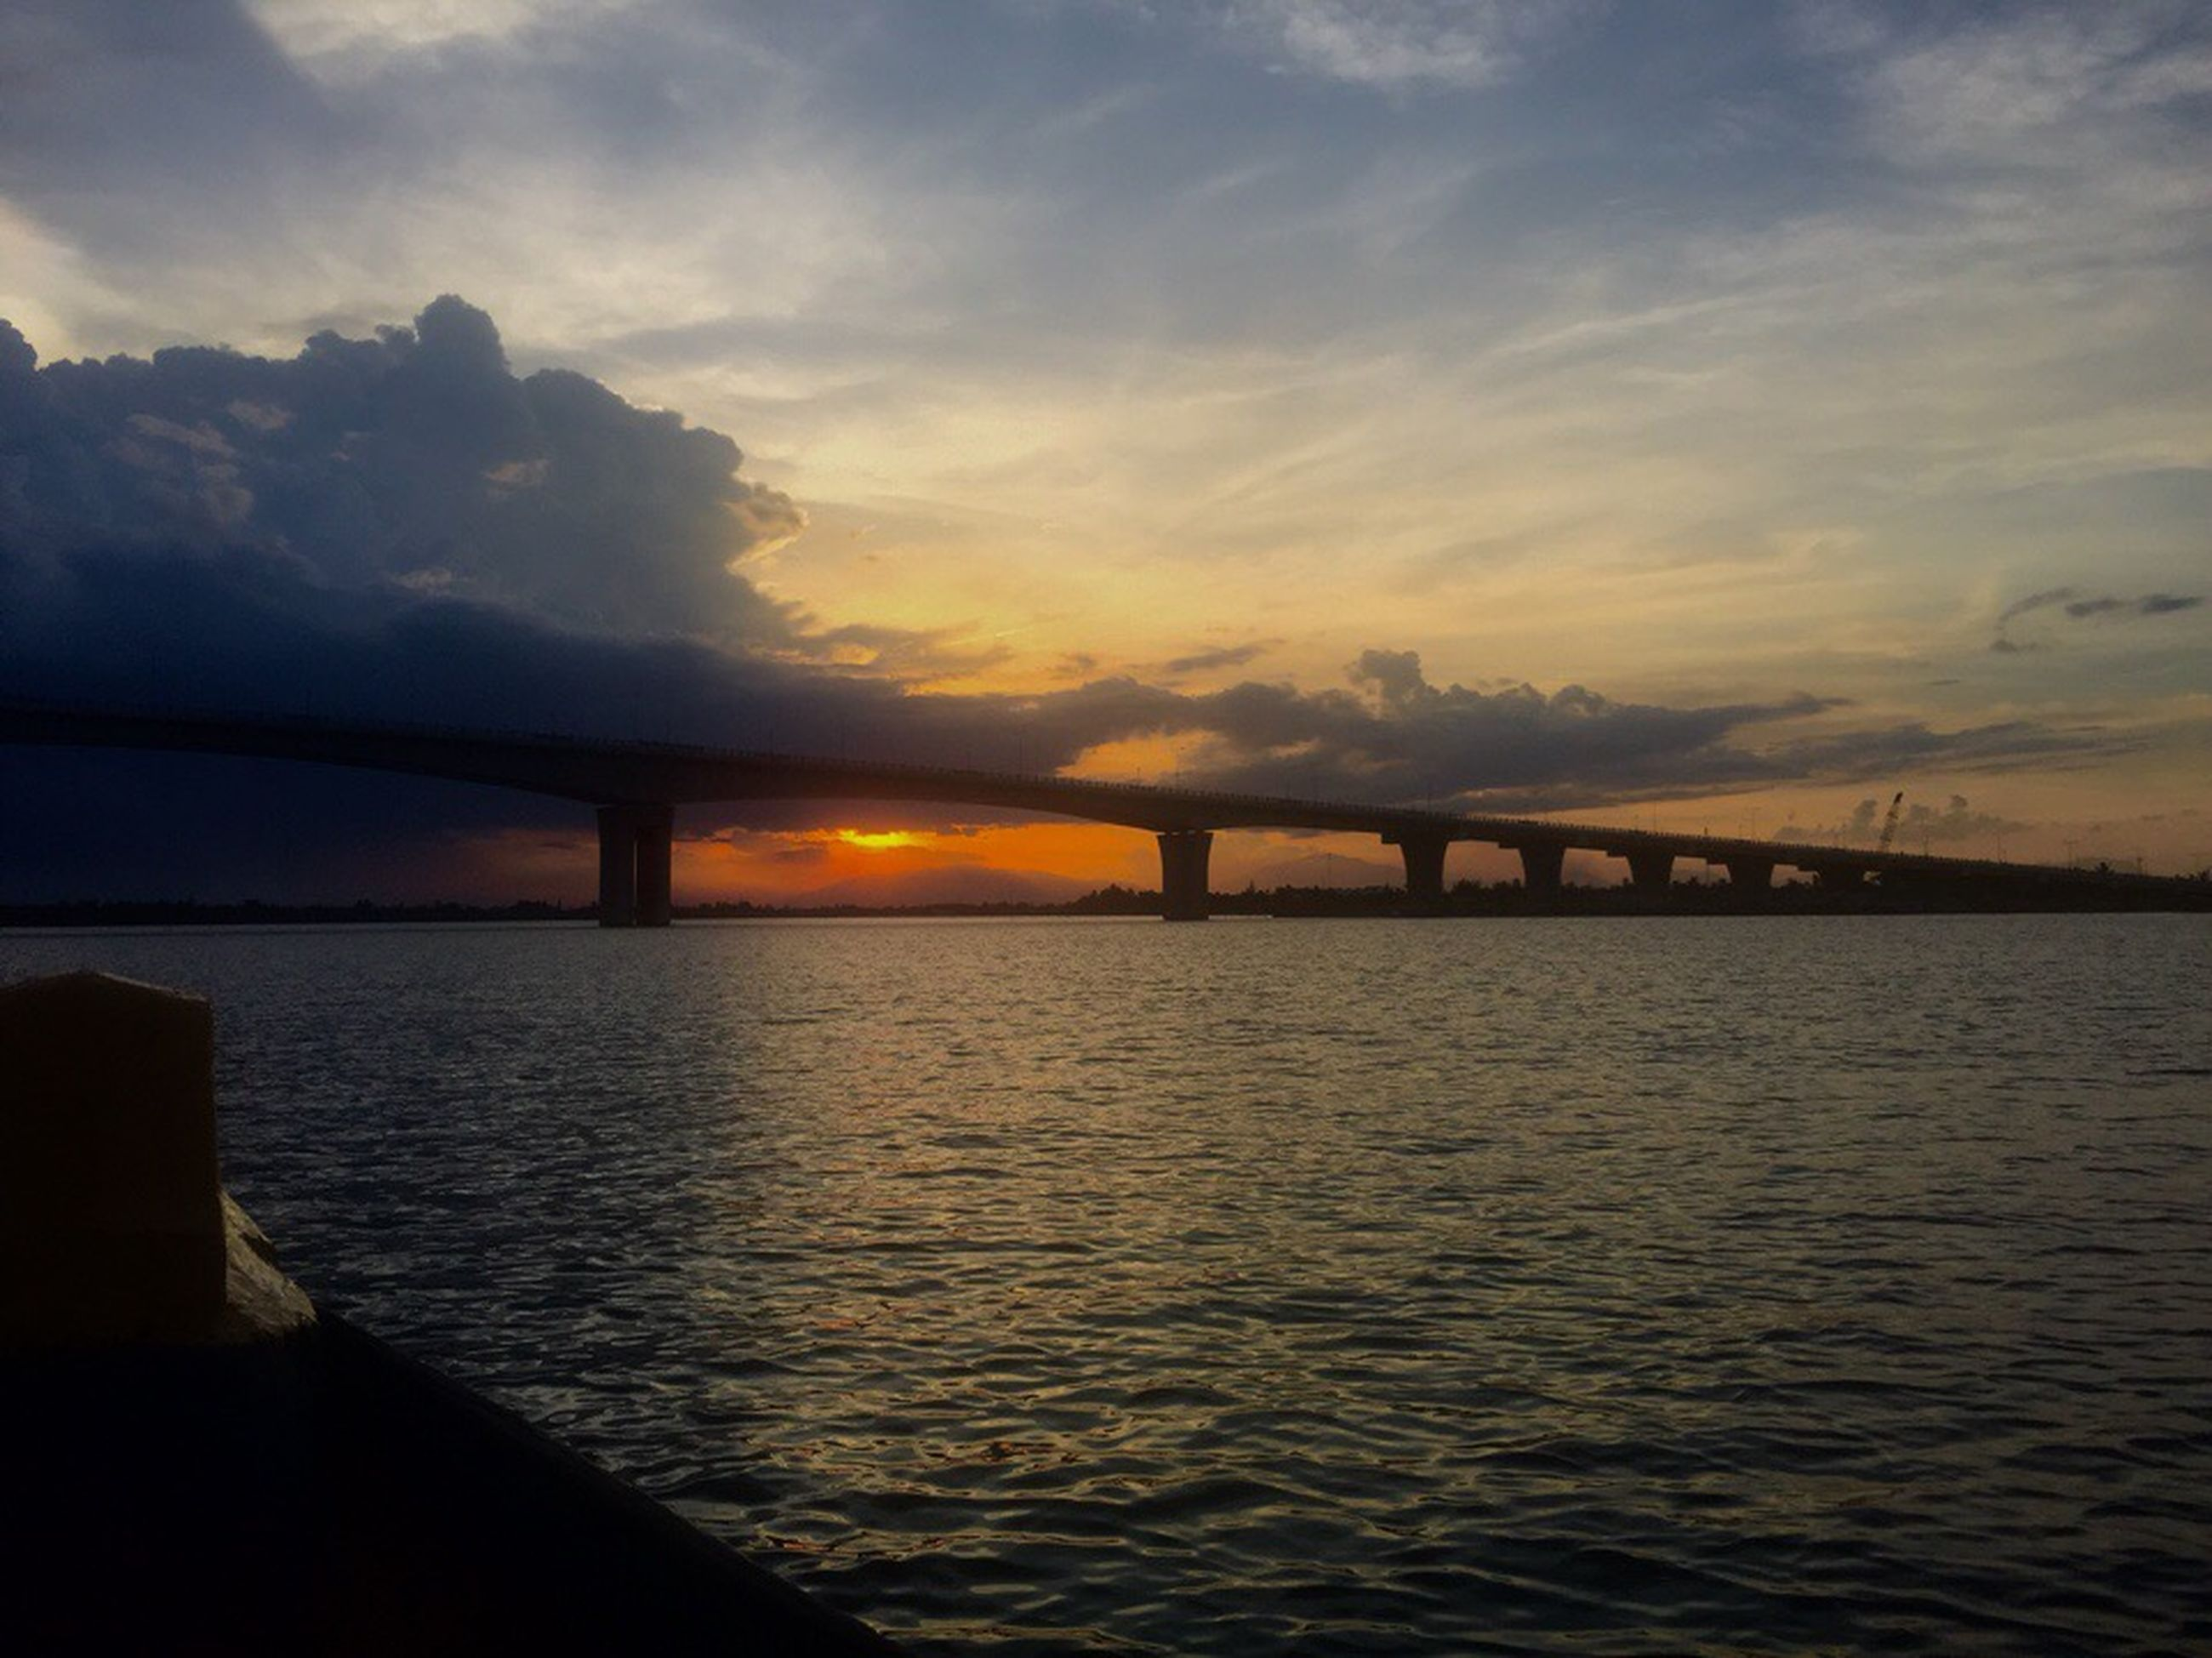 sunset, water, sky, built structure, silhouette, architecture, connection, bridge - man made structure, waterfront, tranquil scene, tranquility, scenics, river, beauty in nature, cloud - sky, nature, reflection, bridge, sun, orange color